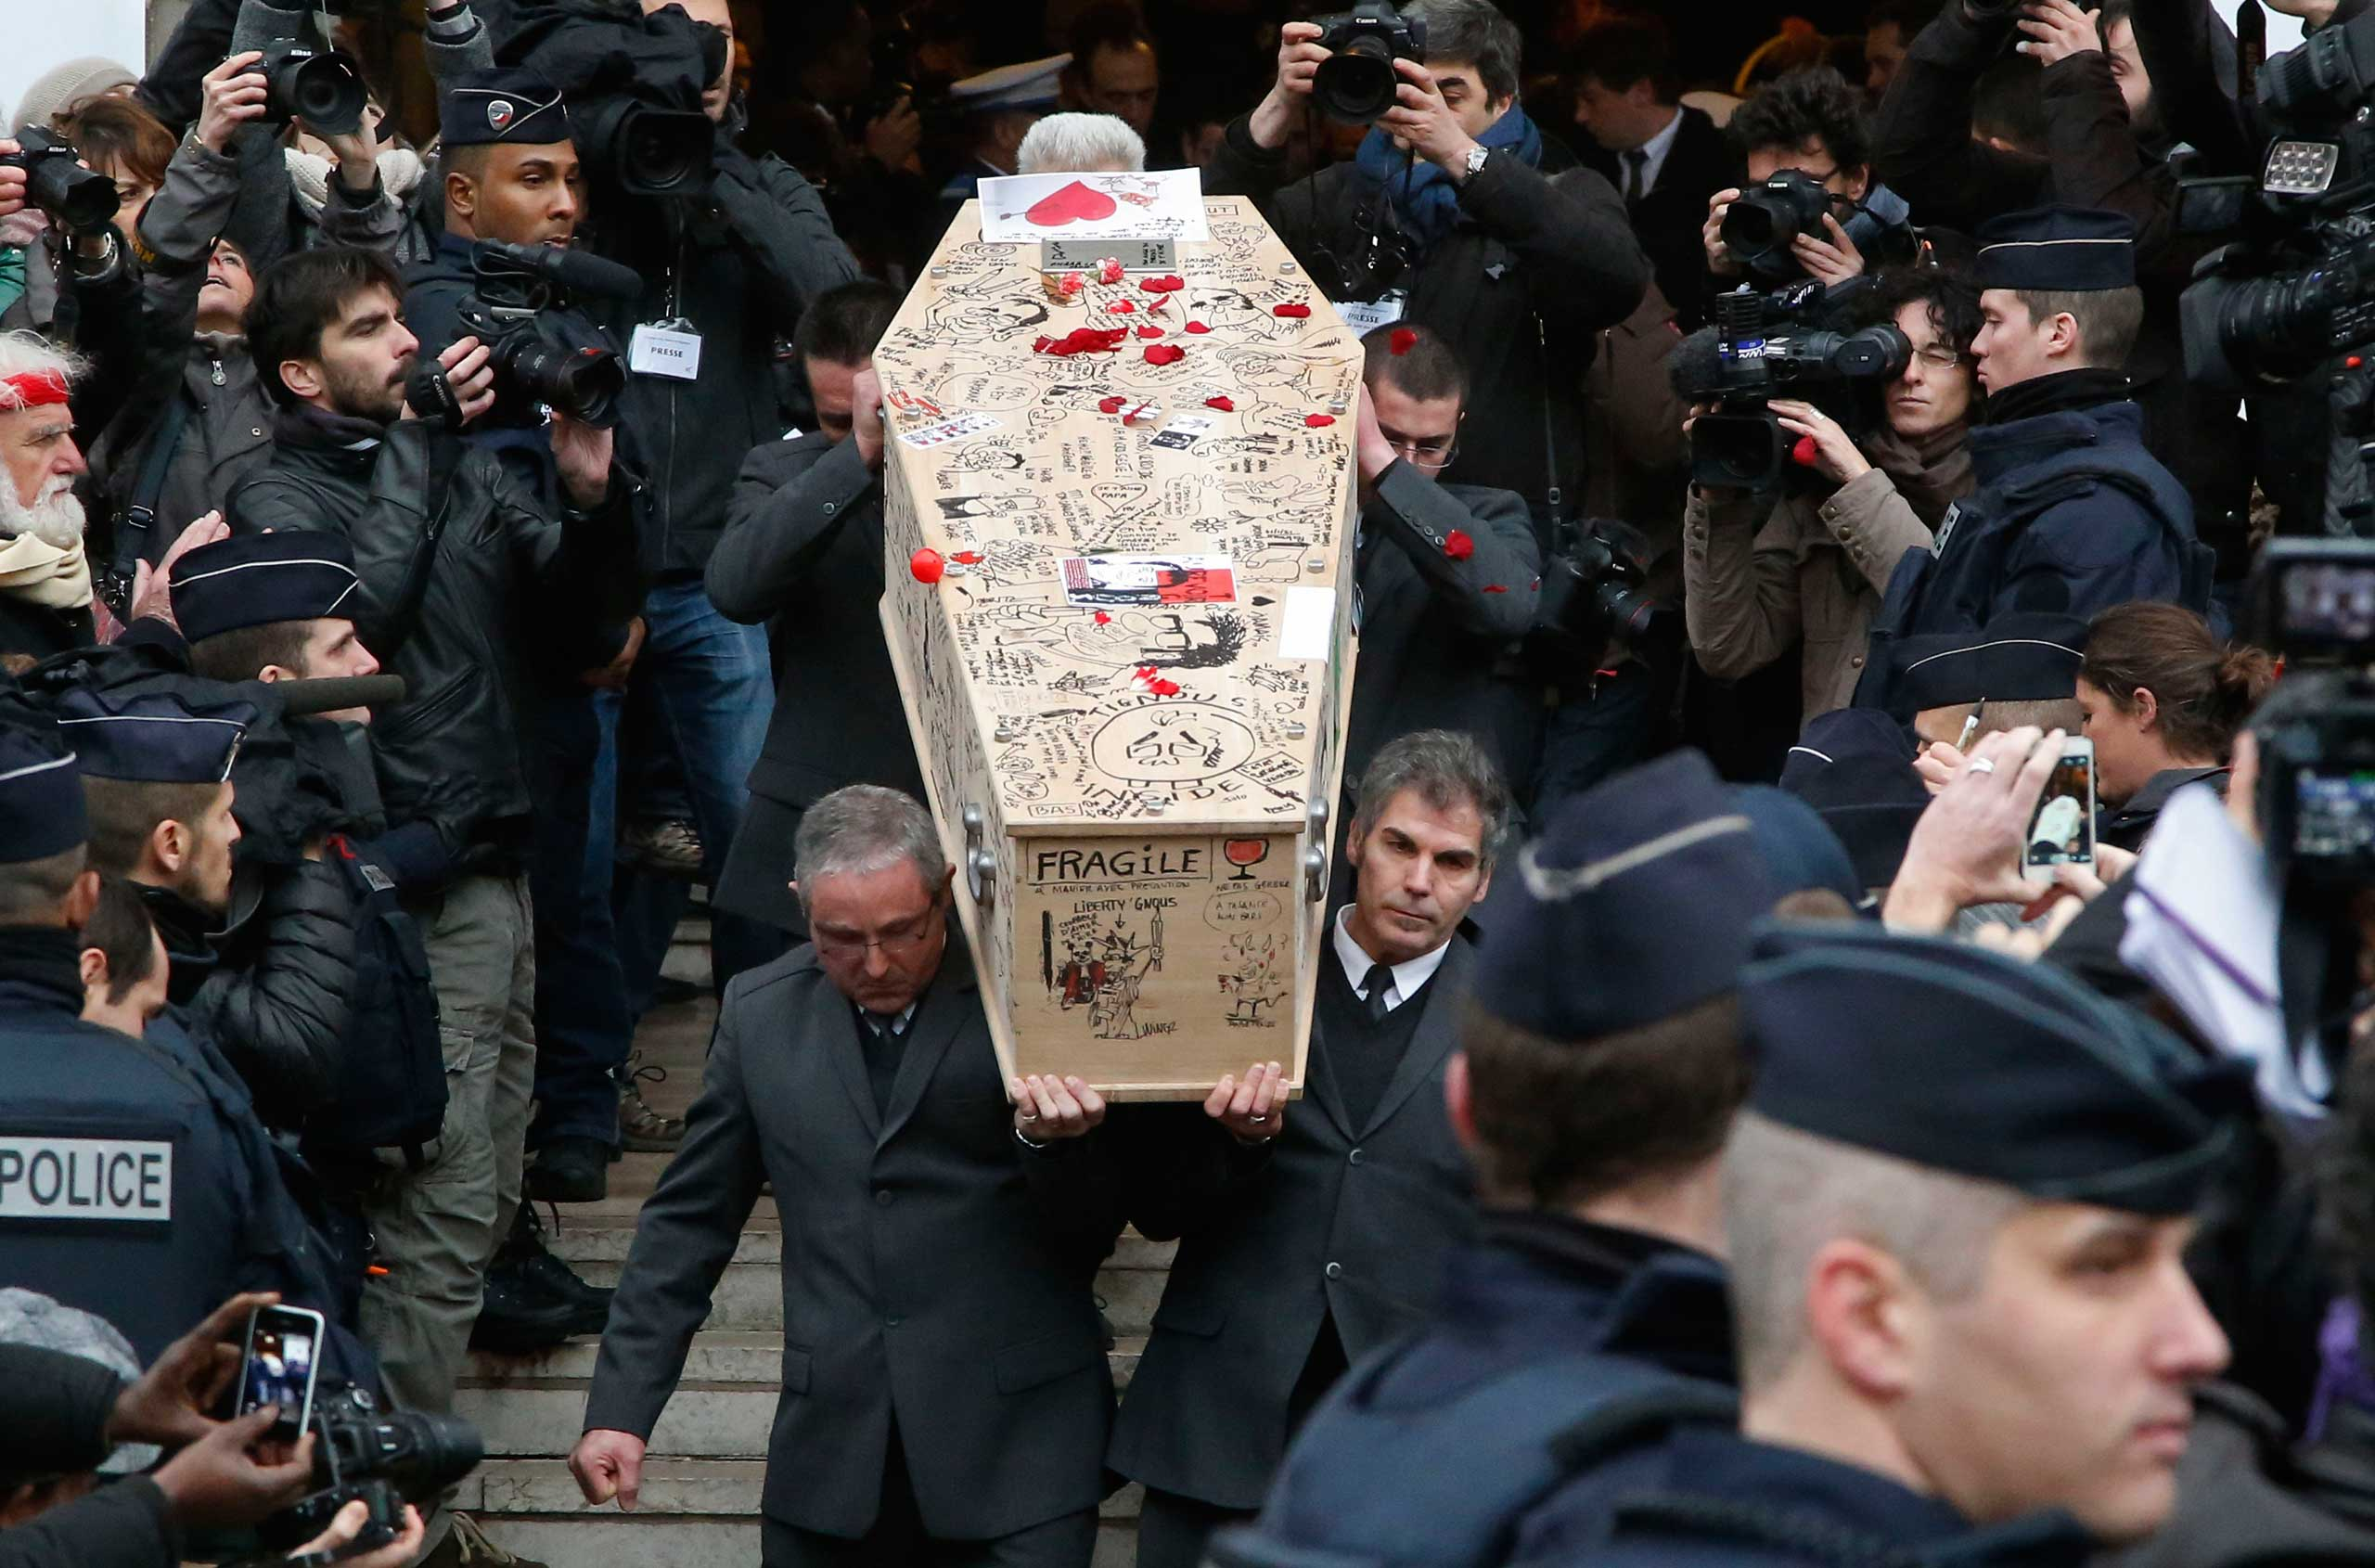 Jan. 15, 2015. Pallbearers carry the casket of Charlie Hebdo cartoonist Bernard Verlhac, known as Tignous, decorated by friends and colleagues of the satirical newspaper Charlie Hebdo, at the city hall of Montreuil, outside east of Paris.